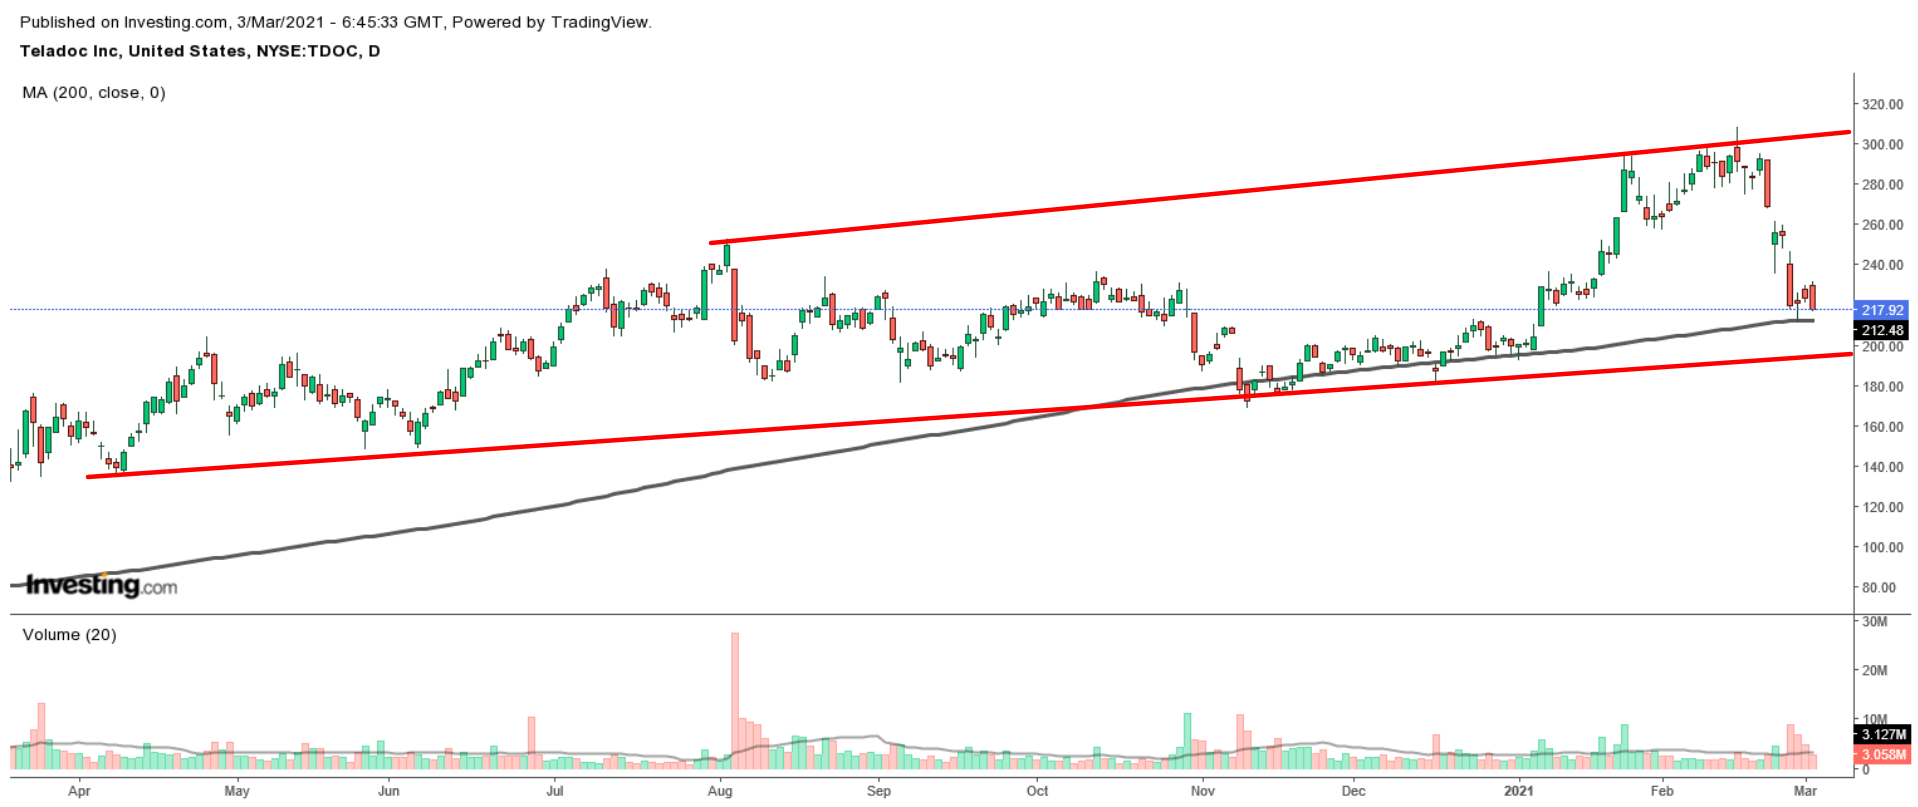 TDOC Daily